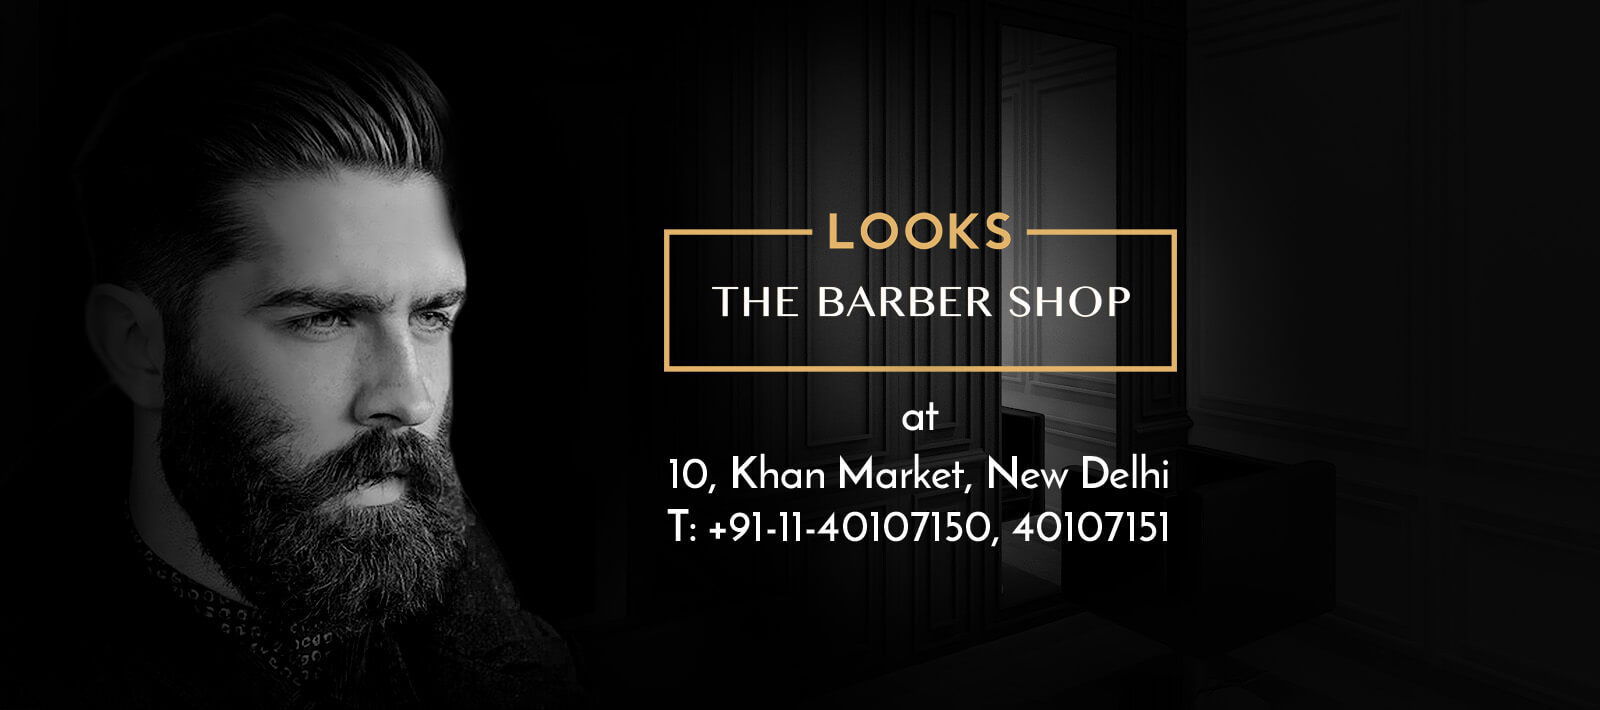 Promotional Banner of The Barber Shop, Khan Market, New Delhi